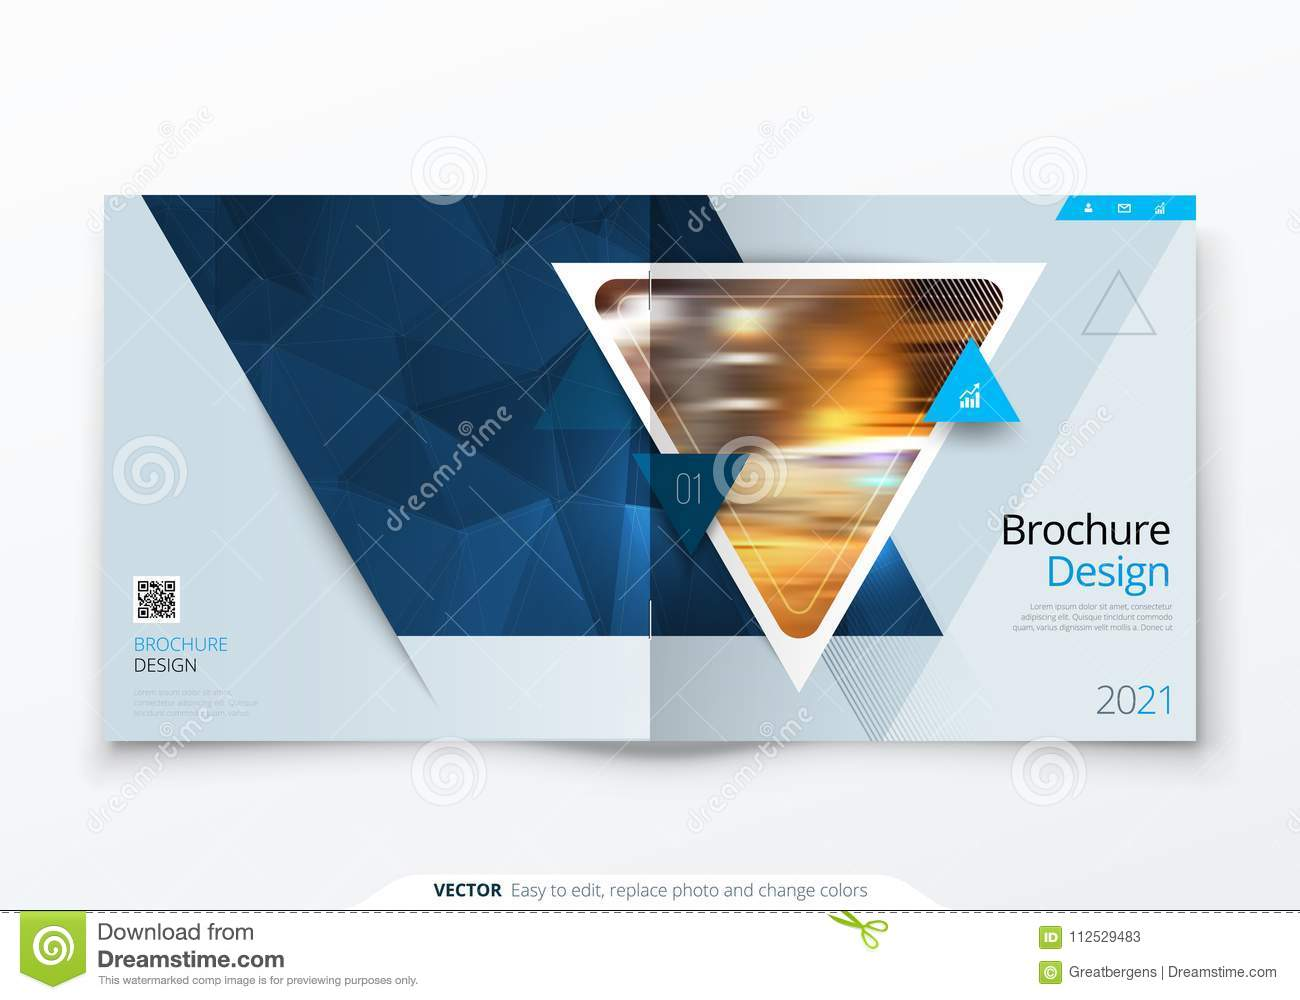 Square Brochure Design Red Corporate Business Rectangle Template Report Catalog Magazine